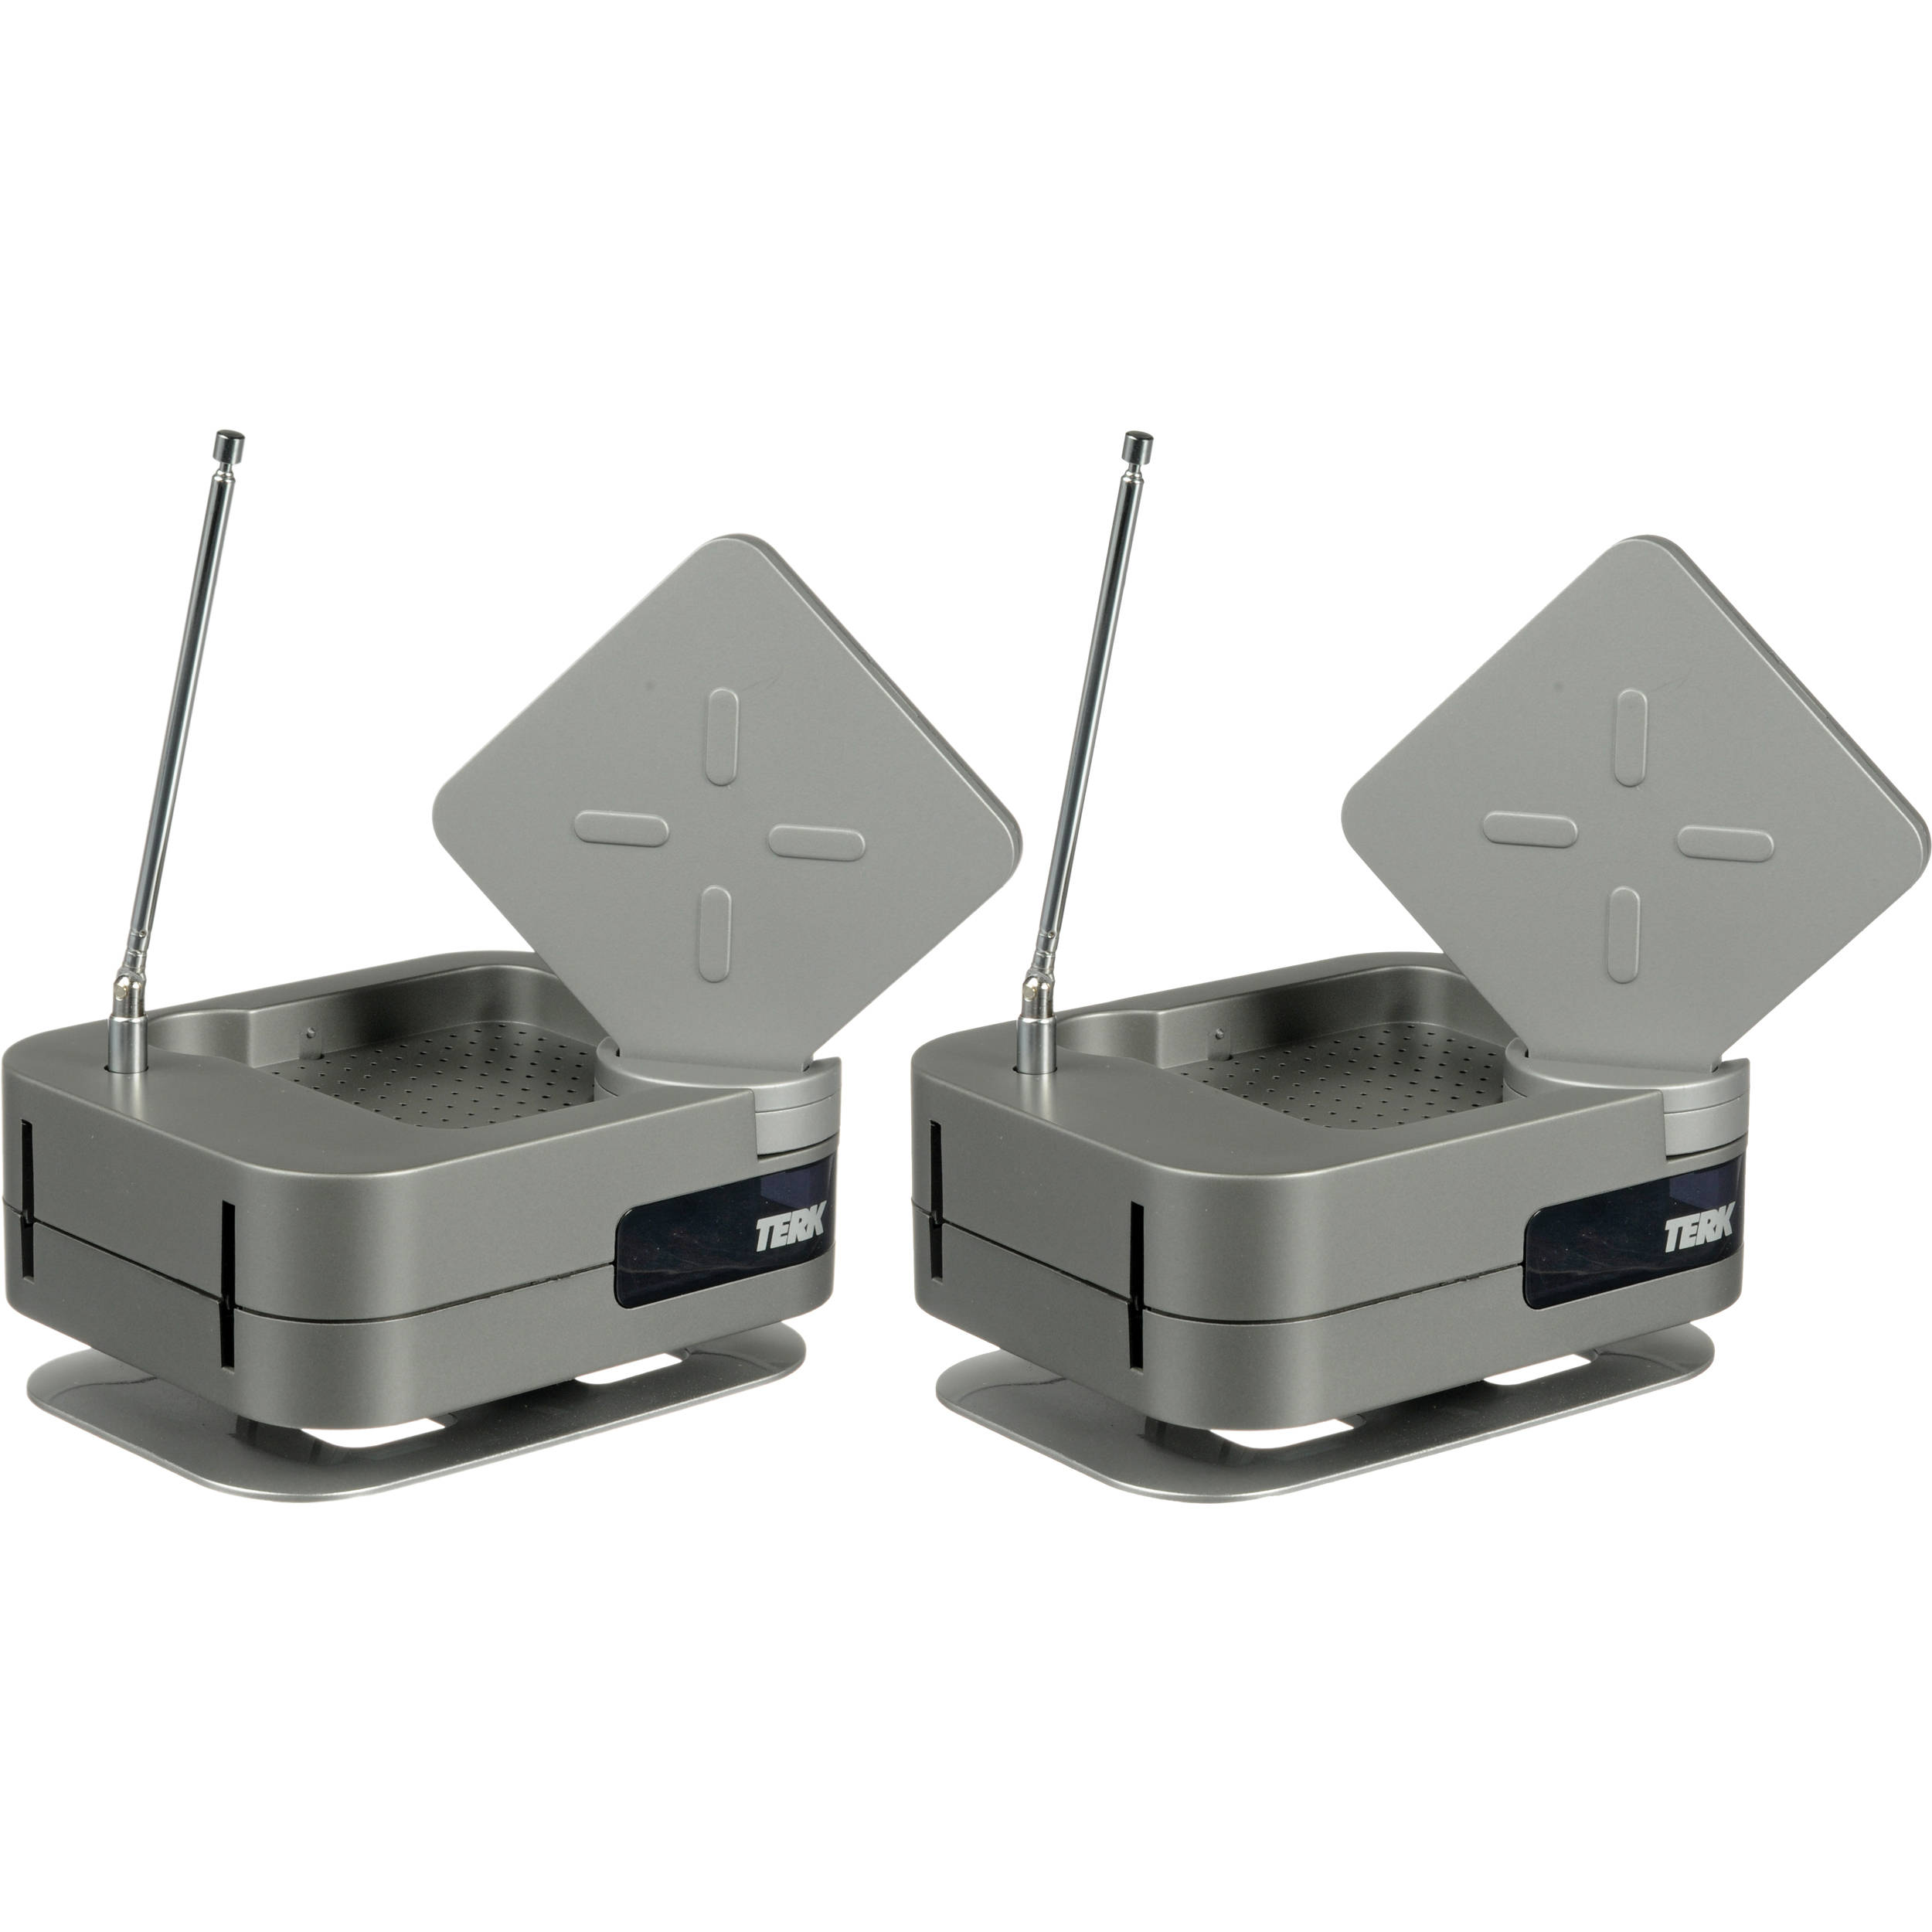 Terk Technologies LF 30S Wireless A V Transmitter And LF30S BH